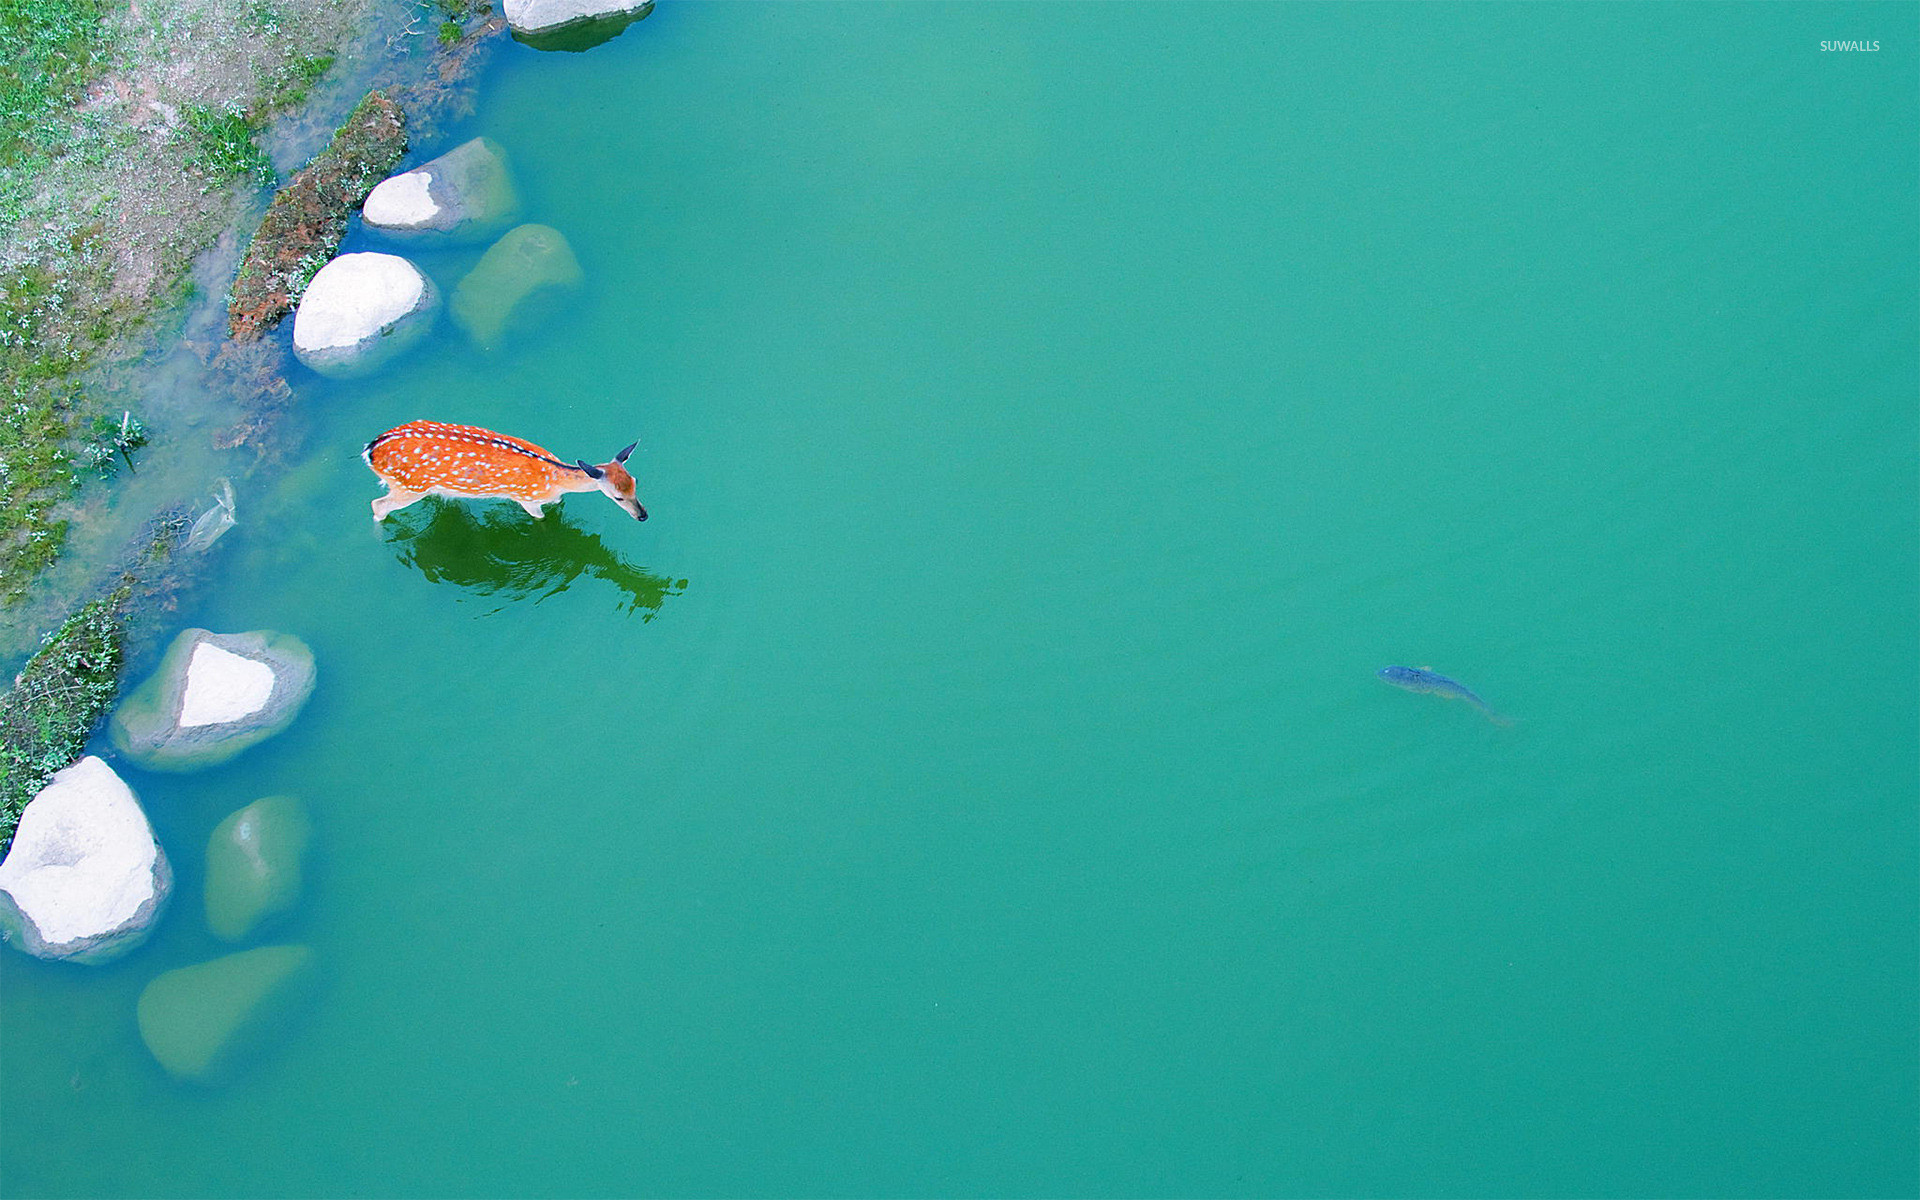 1920x1200 Deer in a pond wallpaper